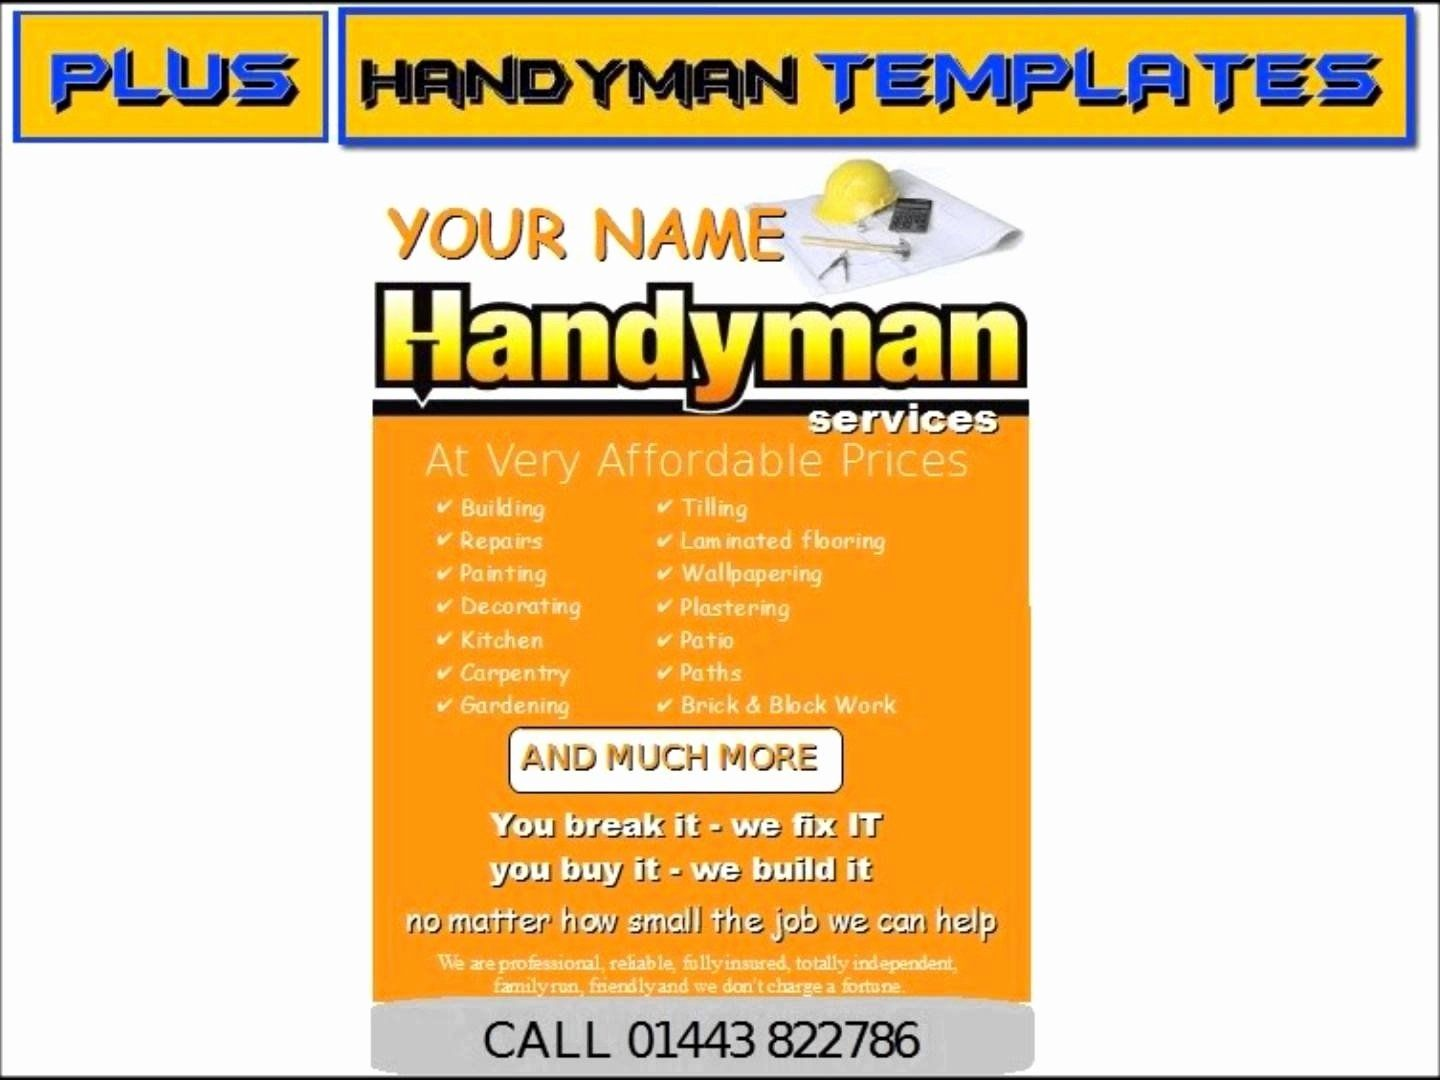 Free Handyman Flyer Templates Awesome Handyman Business Cards Samples Handyman Business Free Business Card Templates Business Card Template Card Templates Free